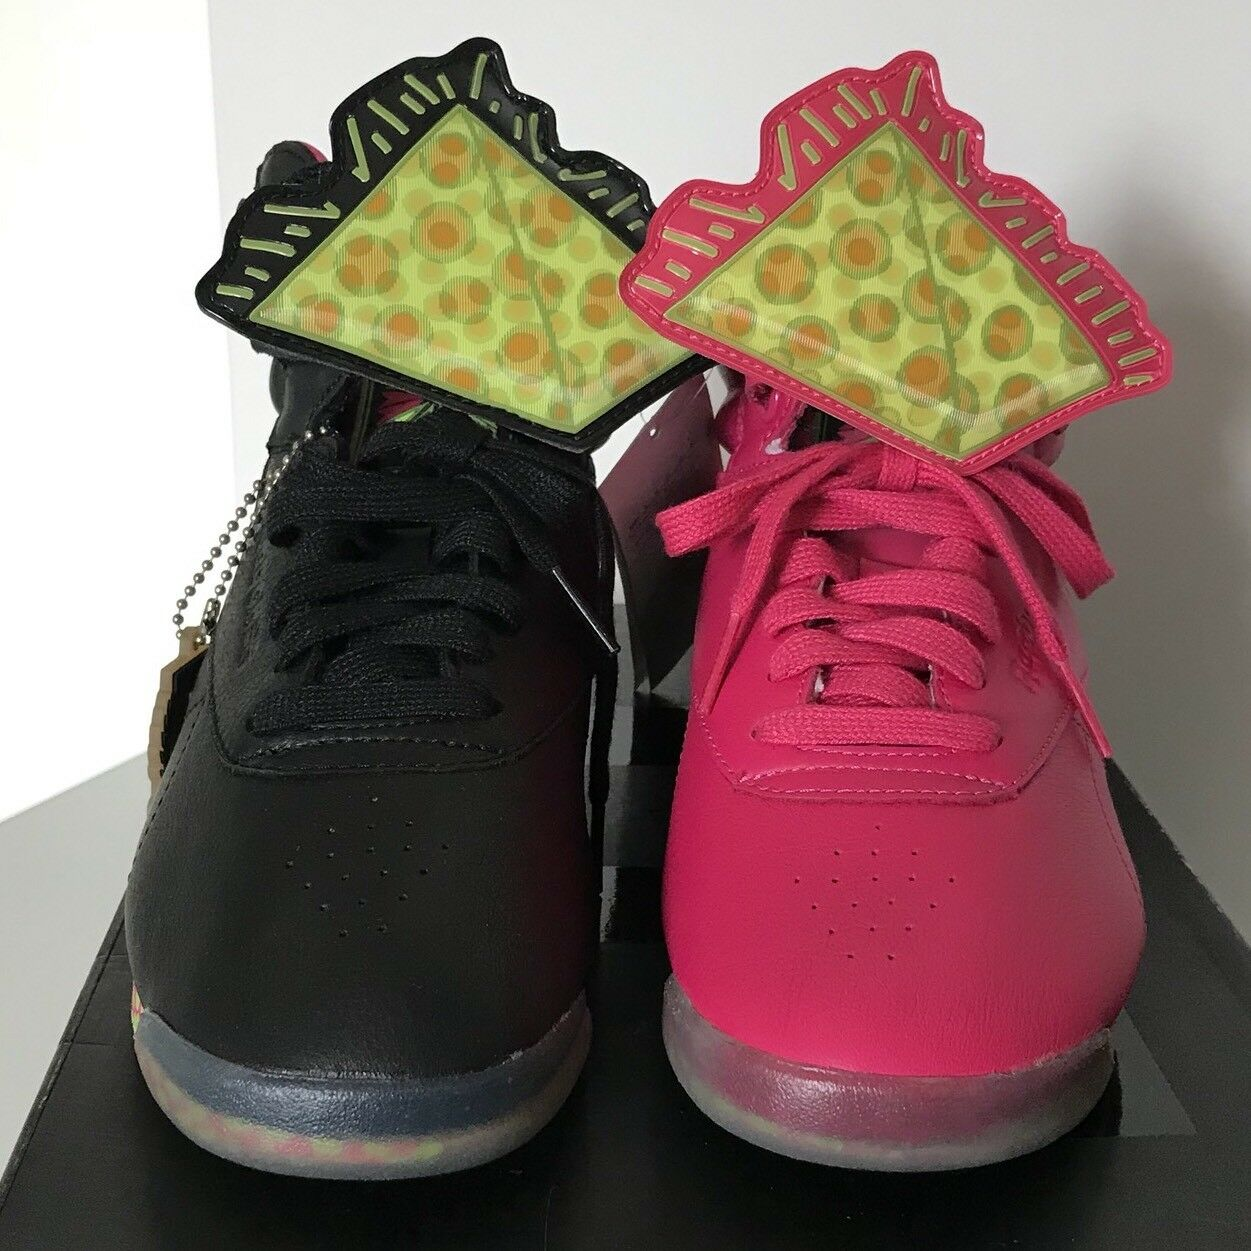 lowest price 227d3 610b0 ... REEBOK limited edition KEITH HARING rosa 37,5 PINK us us us 7 uk 4.5 ...